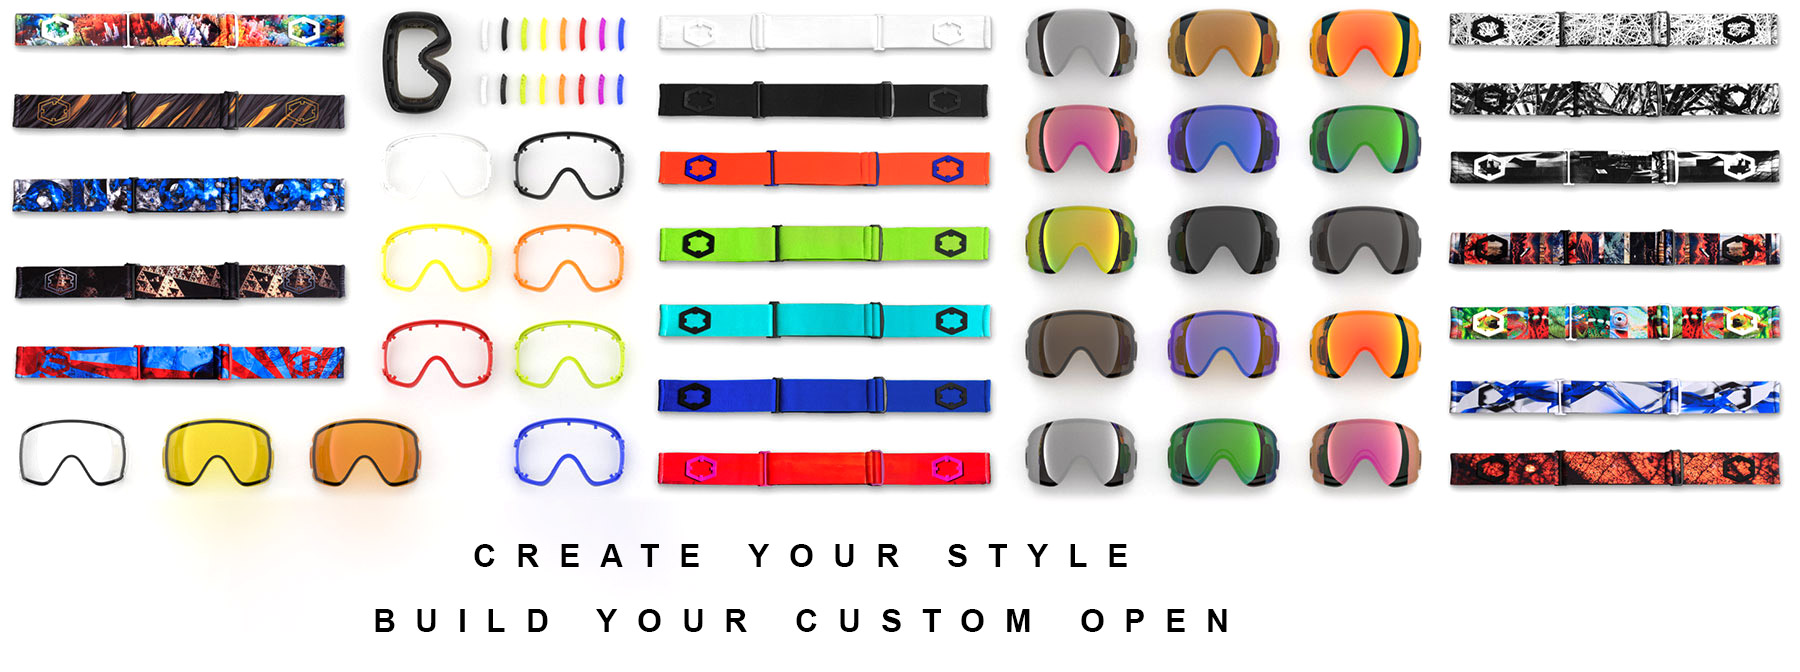 create your style, build your custom out of open goggle, we will ship it in two days